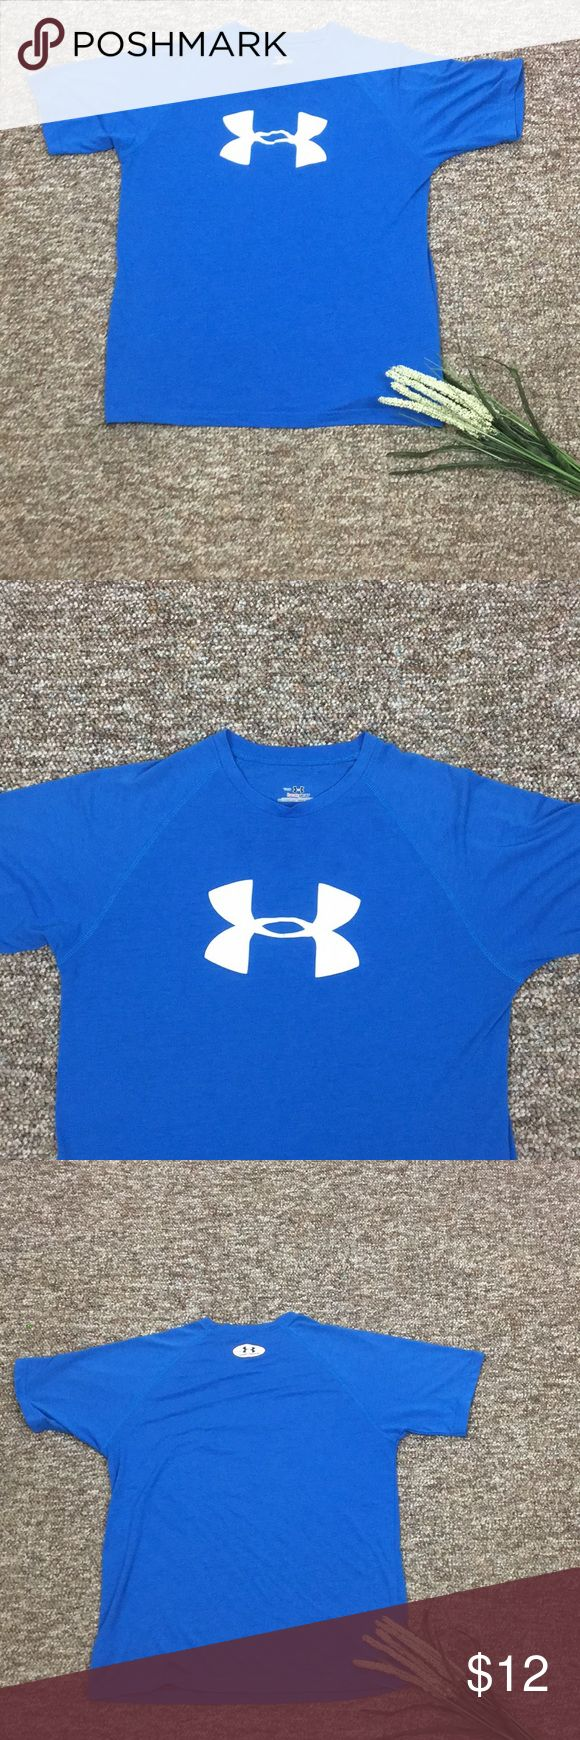 Under Armour Youth Boys Blue T Shirt Under Armour Heat Gear Youth Boys T - Shirt. Size Youth Large, Blue.          M - 10 - 1 Under Armour Shirts & Tops Tees - Short Sleeve